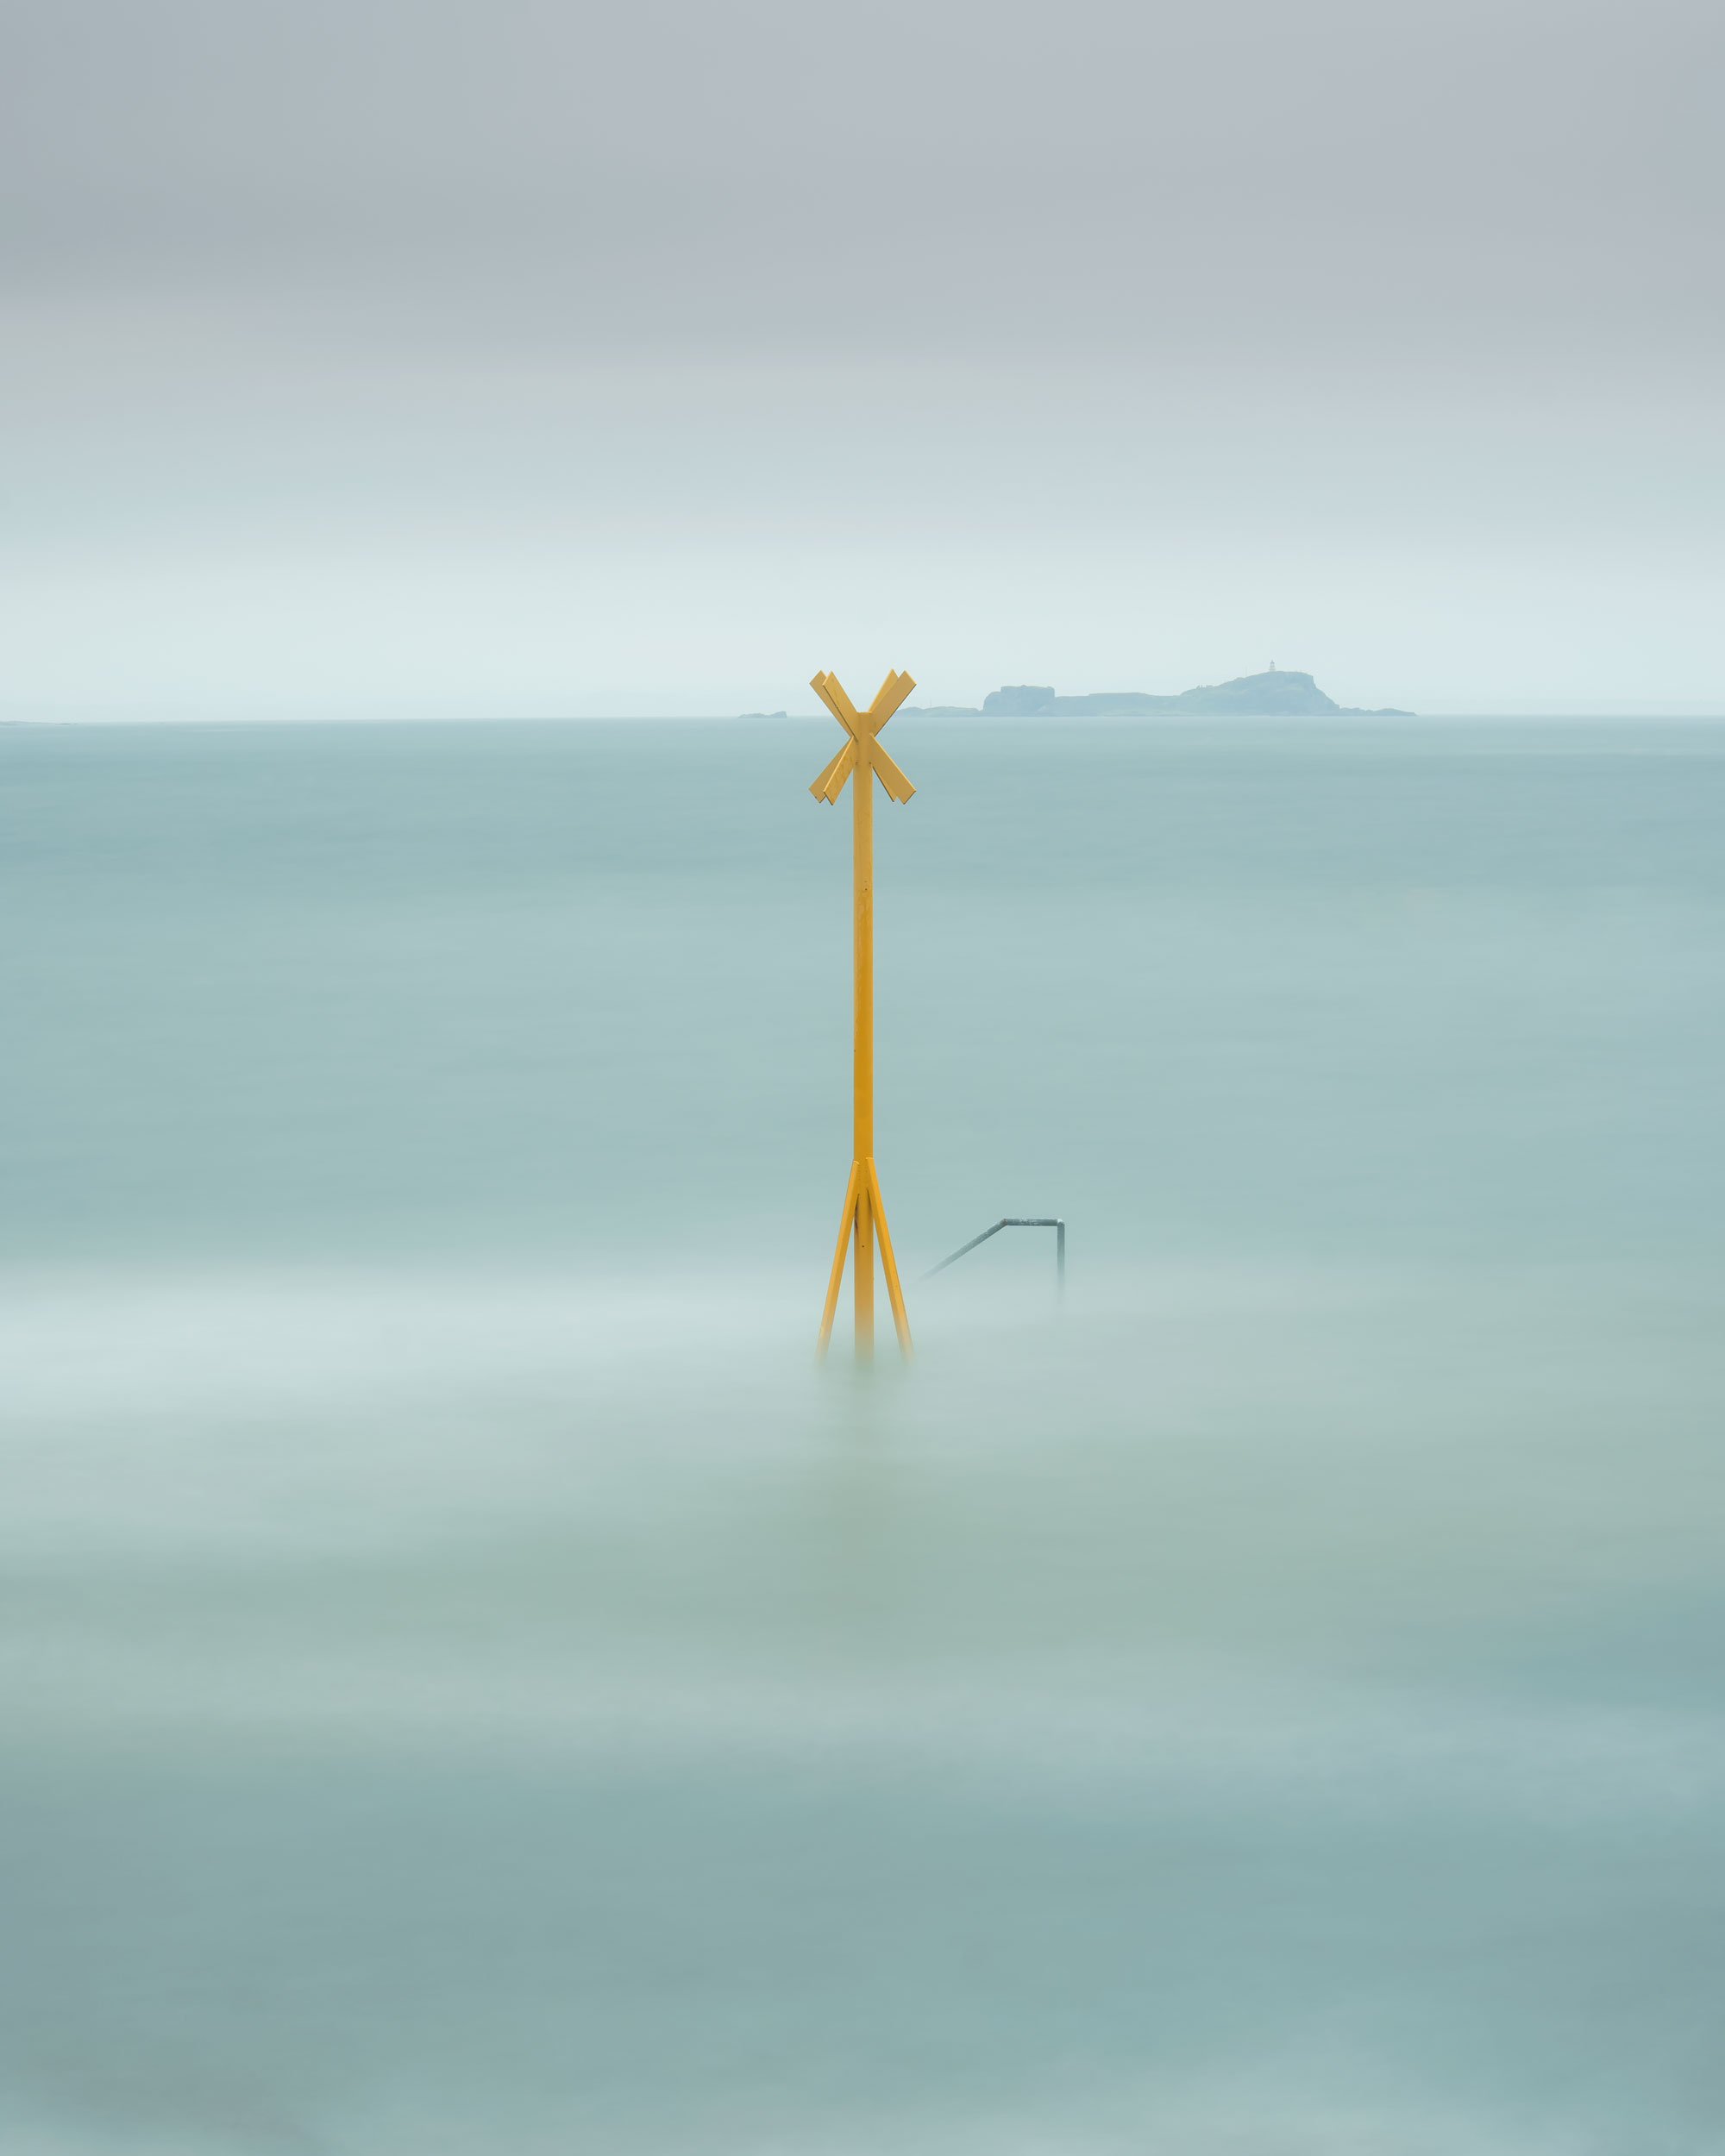 Aquamarine. One minute thirty in the cold and rain to capture one of my favourite images.